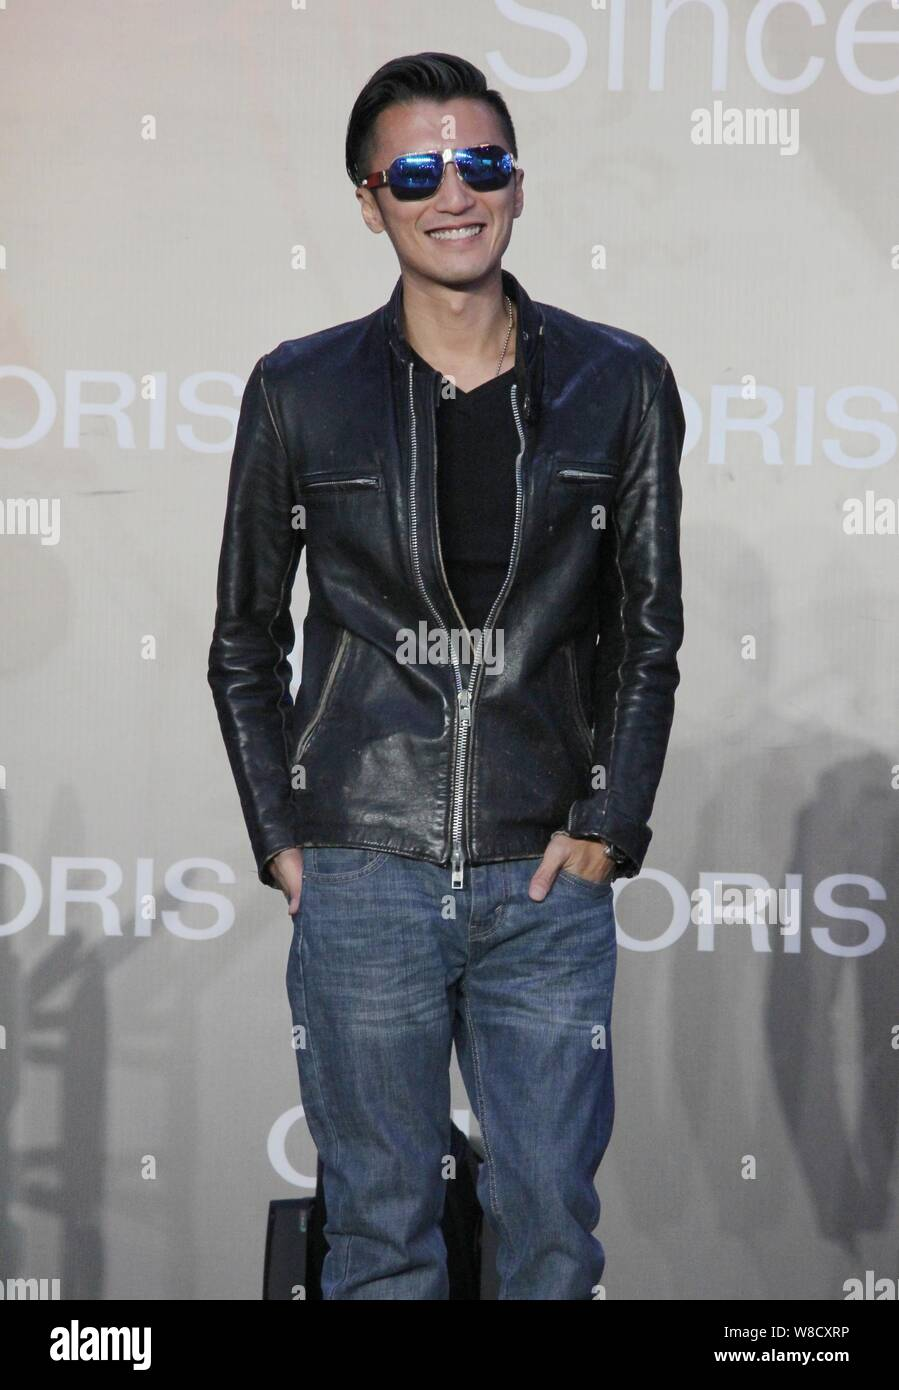 Hong Kong singer and actor Nicholas Tse smiles at a promotional event for Swiss watch brand ORIS in Shanghai, China, 20 September 2015. Stock Photo